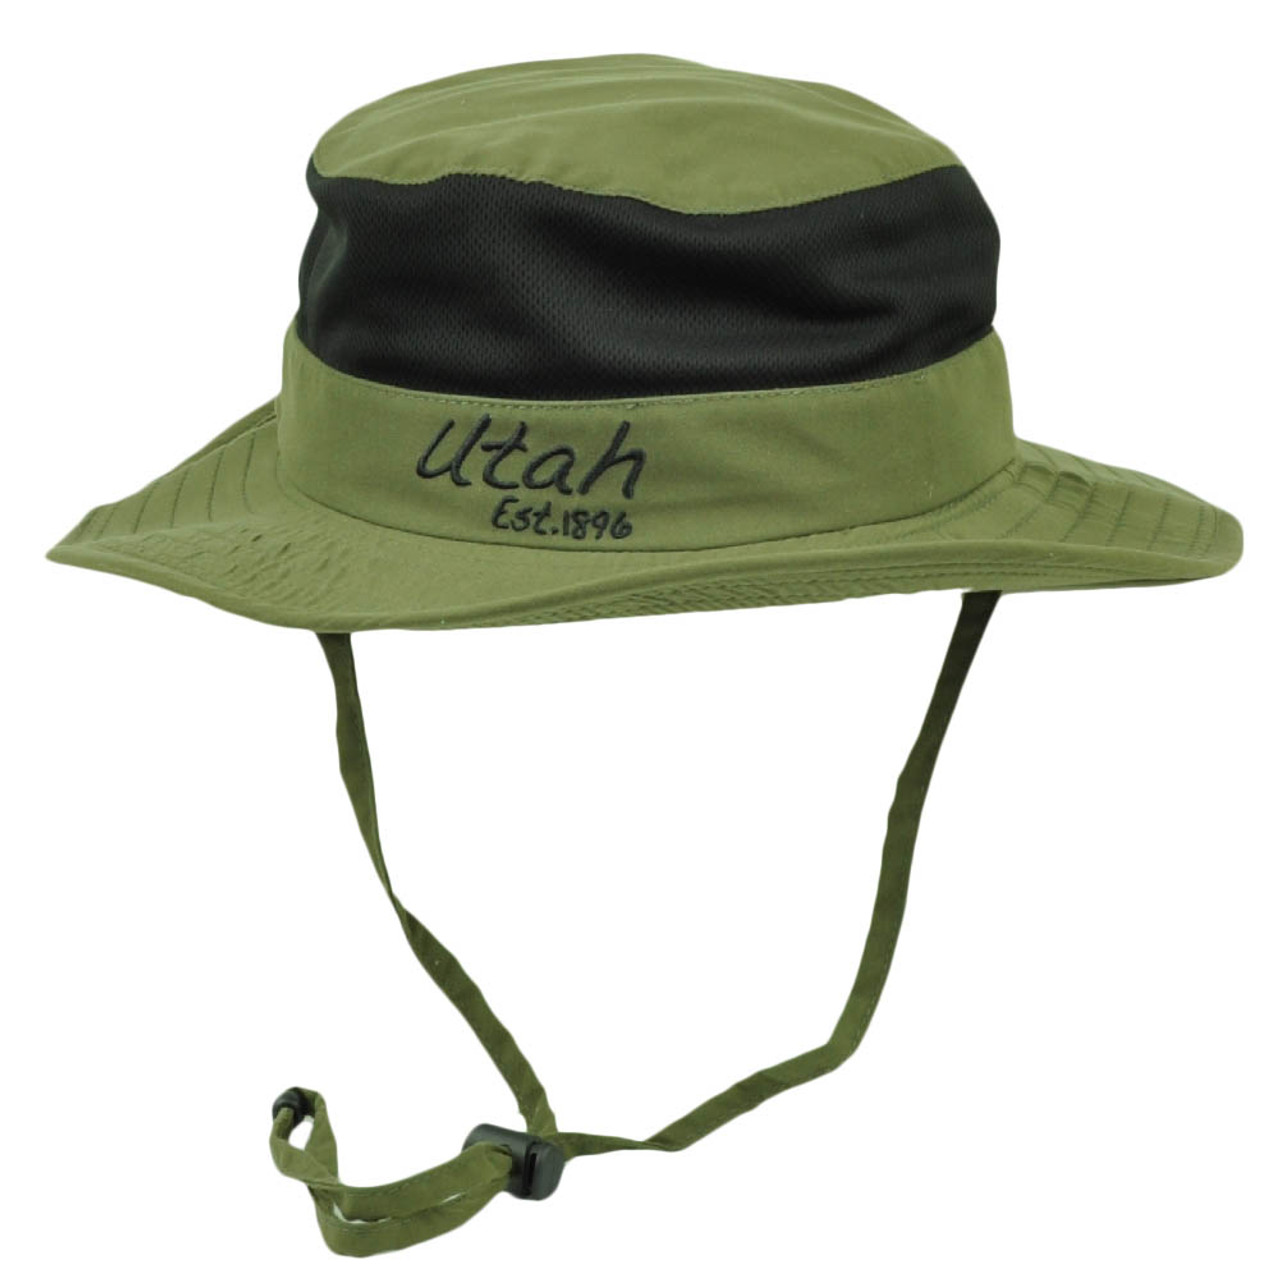 c11a59c633cf2d Utah State Olive Green Booney Sun bucket Hat Chin Strap Mesh Band Outdoors  USA - Cap Store Online.com